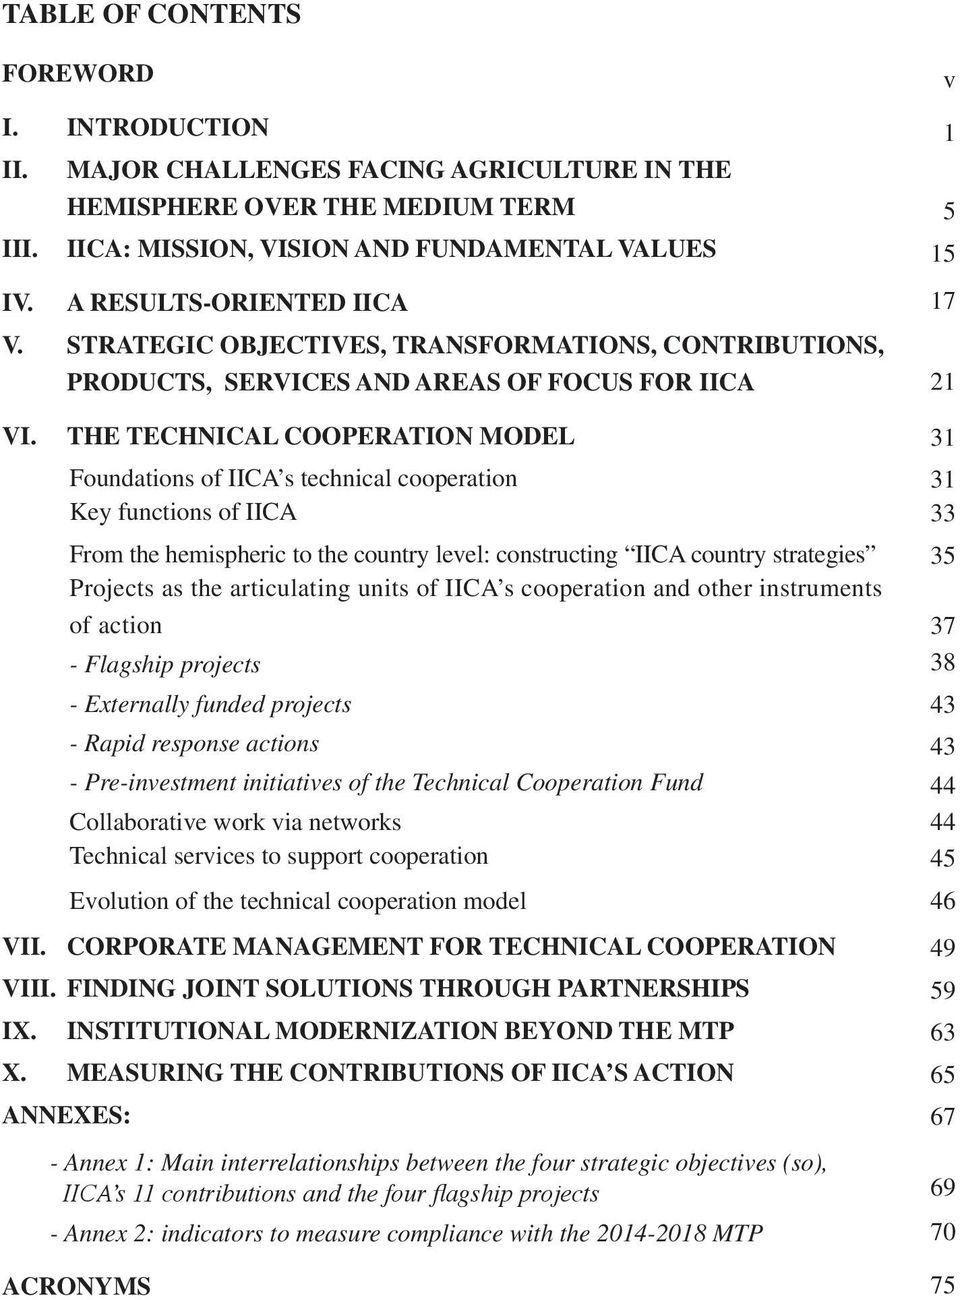 THE TECHNICAL COOPERATION MODEL Foundations of IICA s technical cooperation Key functions of IICA From the hemispheric to the country level: constructing IICA country strategies Projects as the